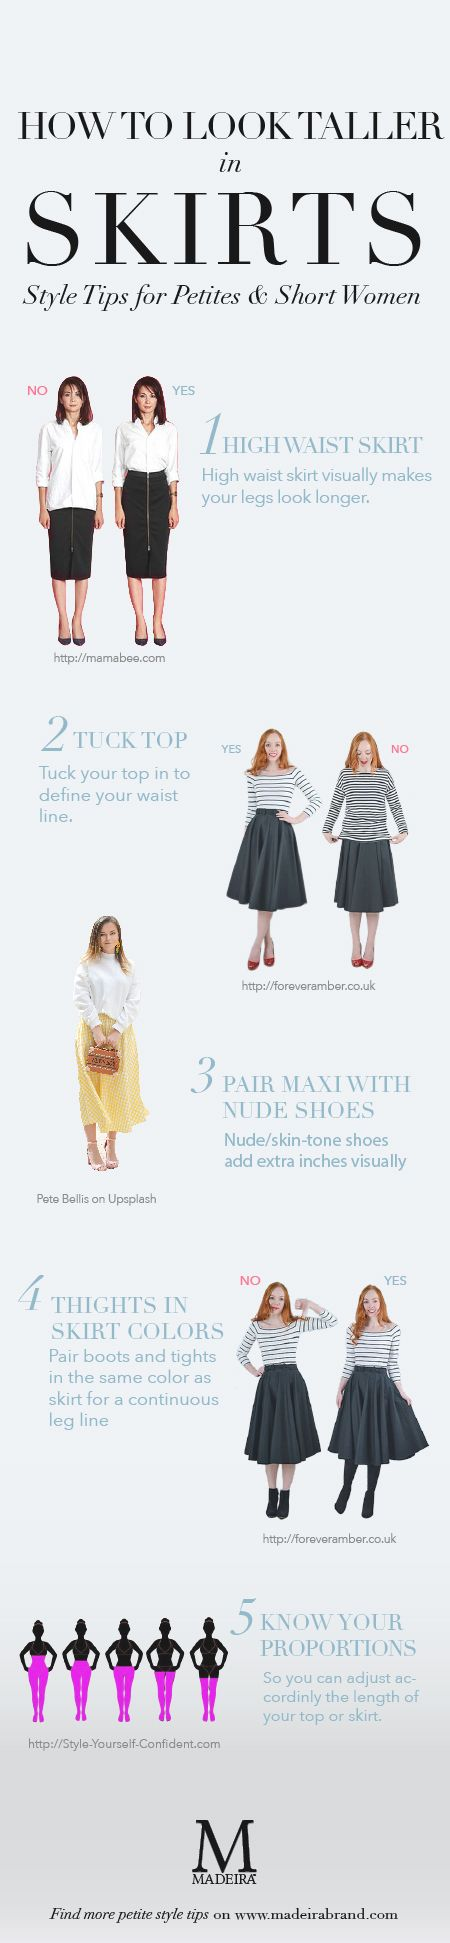 Skirt is one of the most versatile wardrobe. Whether your favorite silhouette is A-line, pencil or full, midi, or maxi, try these style tips to dress like a pro petite fashion blogger.